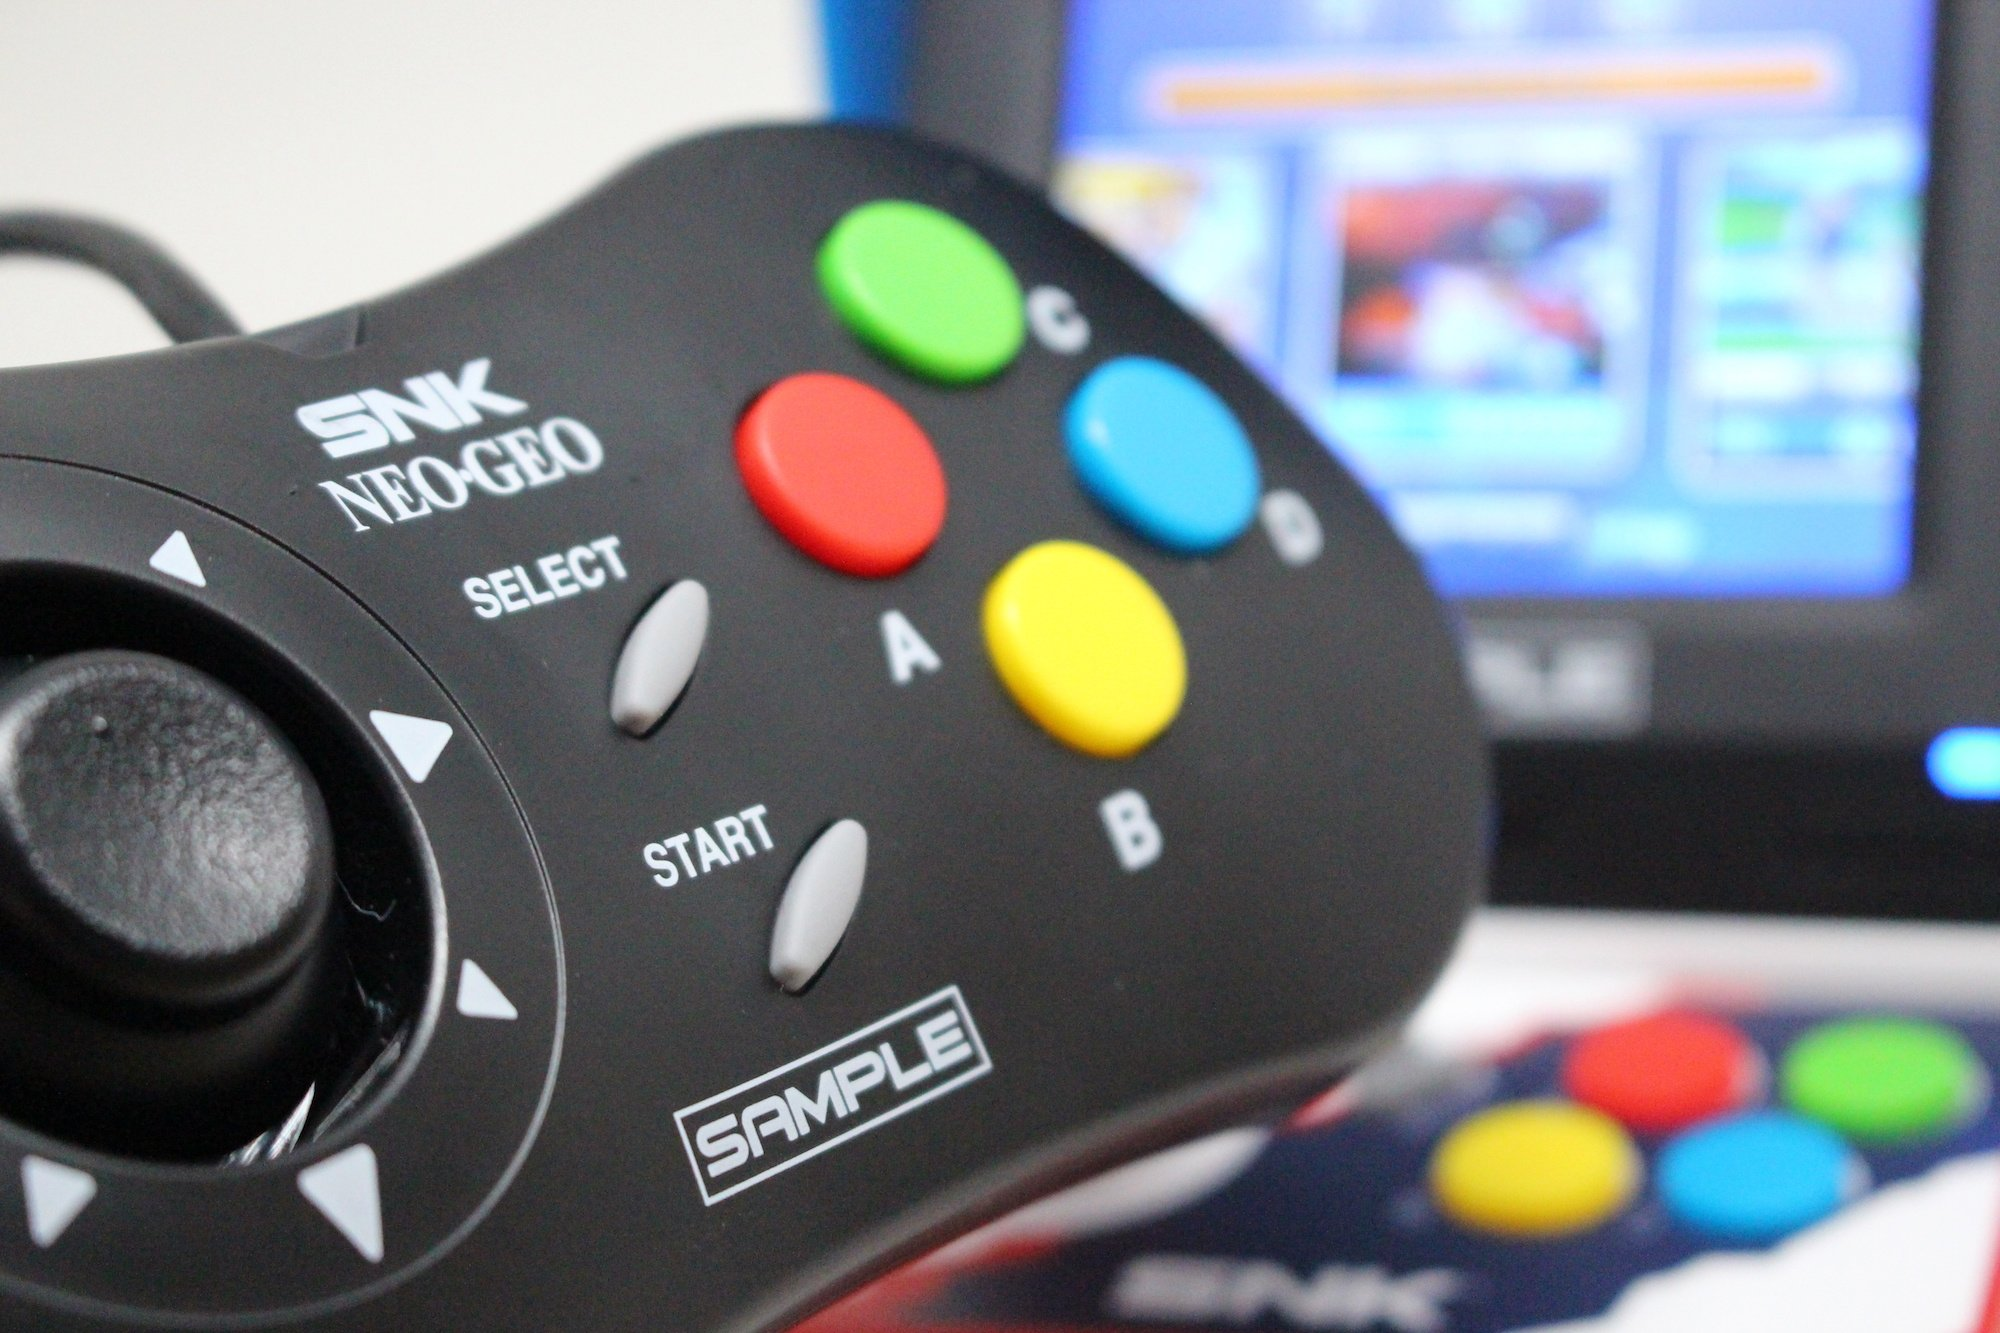 Hardware Review: Does The SNK Neo Geo Mini Outclass